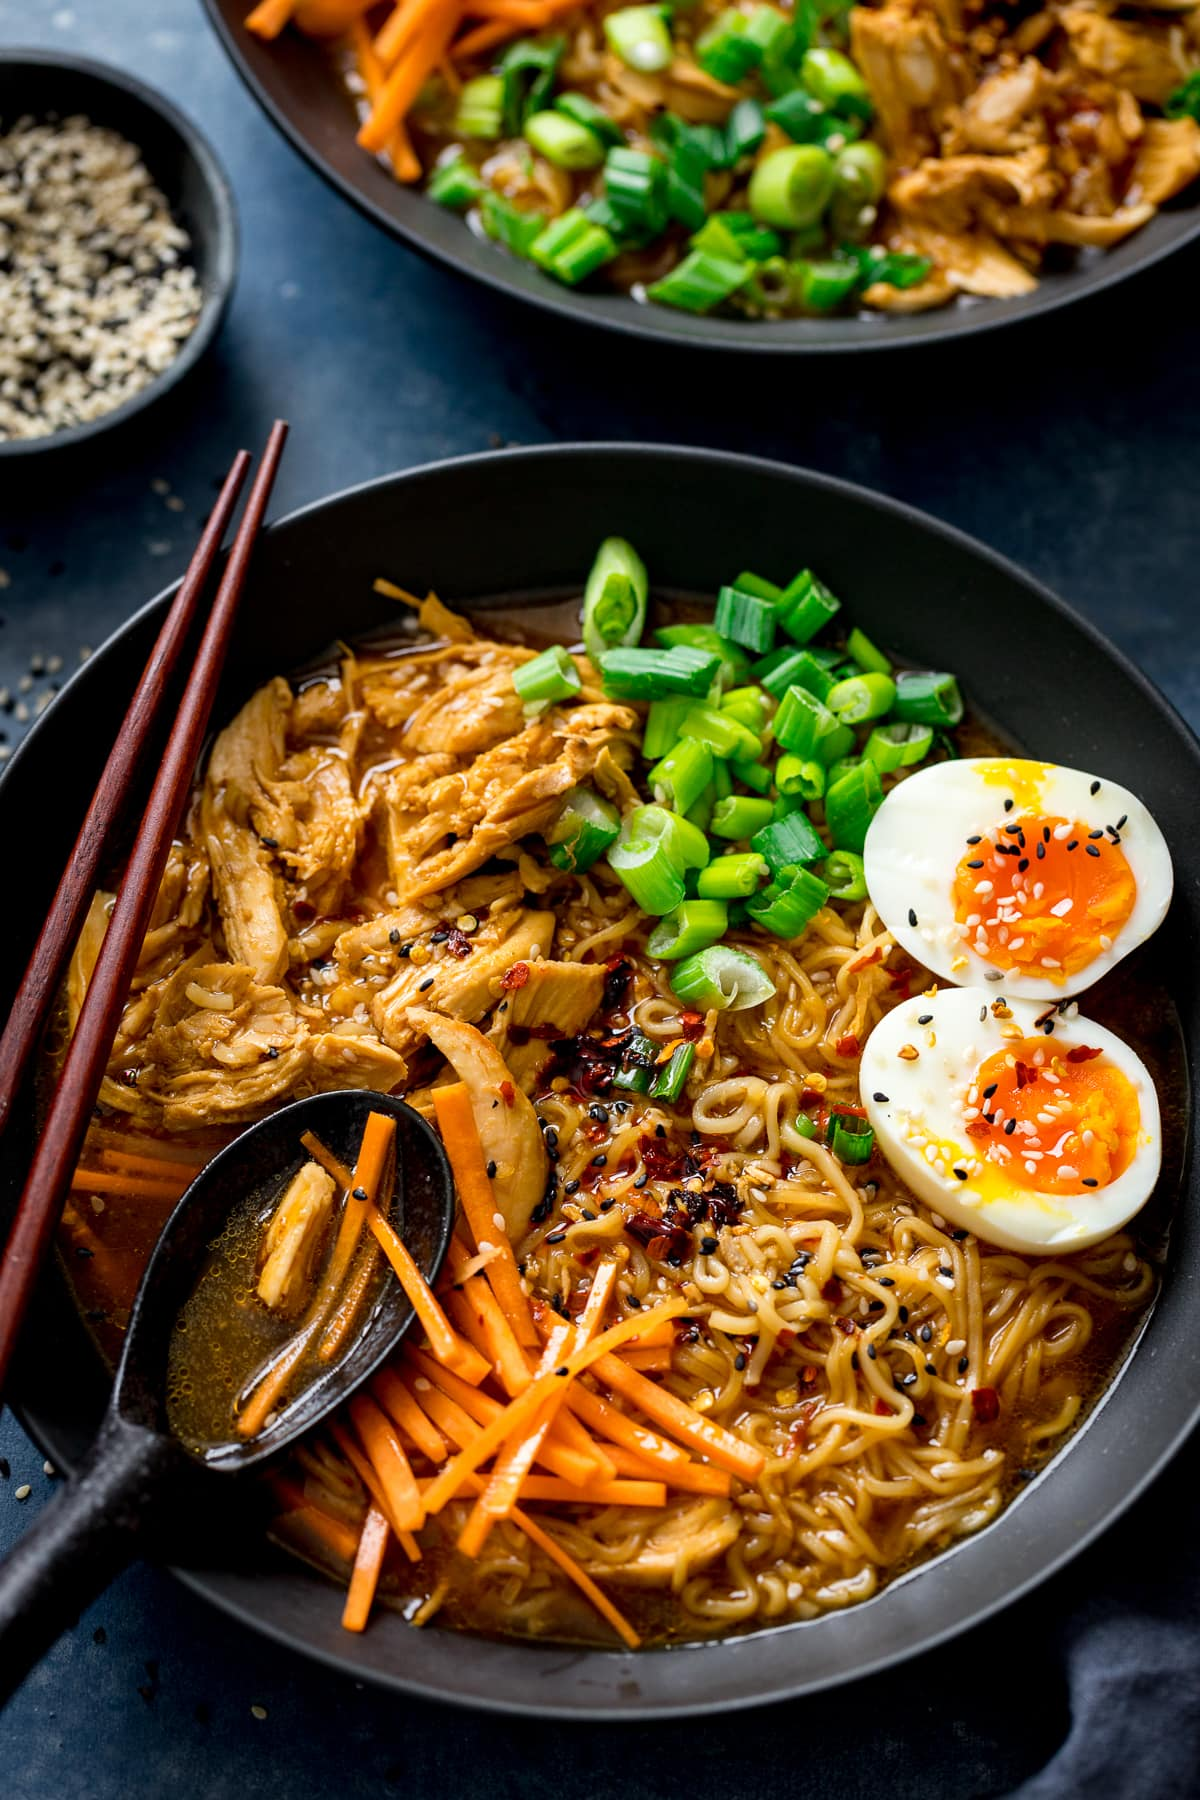 Chicken Ramen in a black bowl topped with egg, carrots and spring onions. Spoonful being taken.